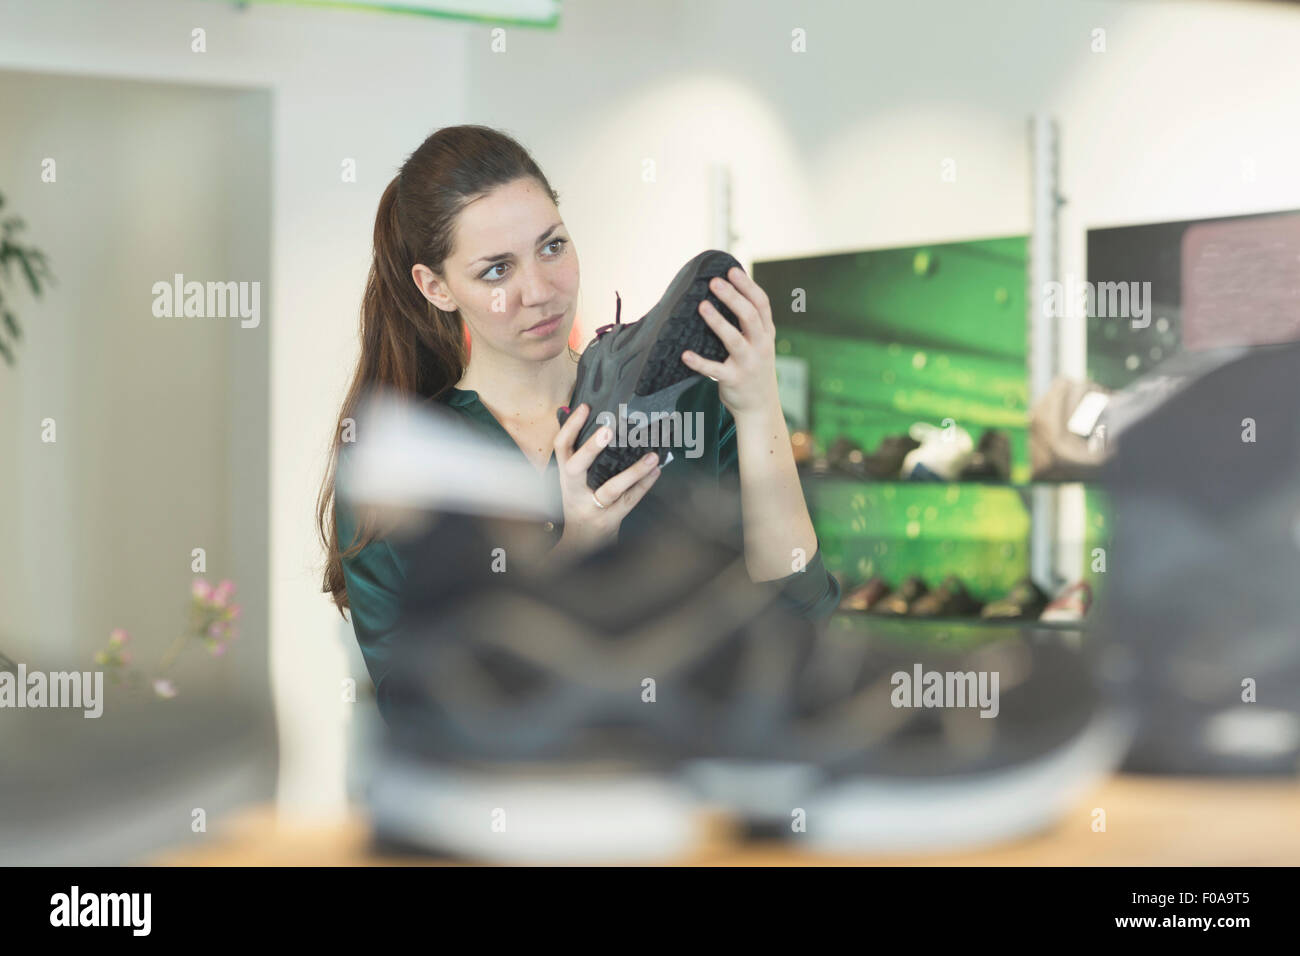 Young female shopper inspecting trainer in shoe shop - Stock Image